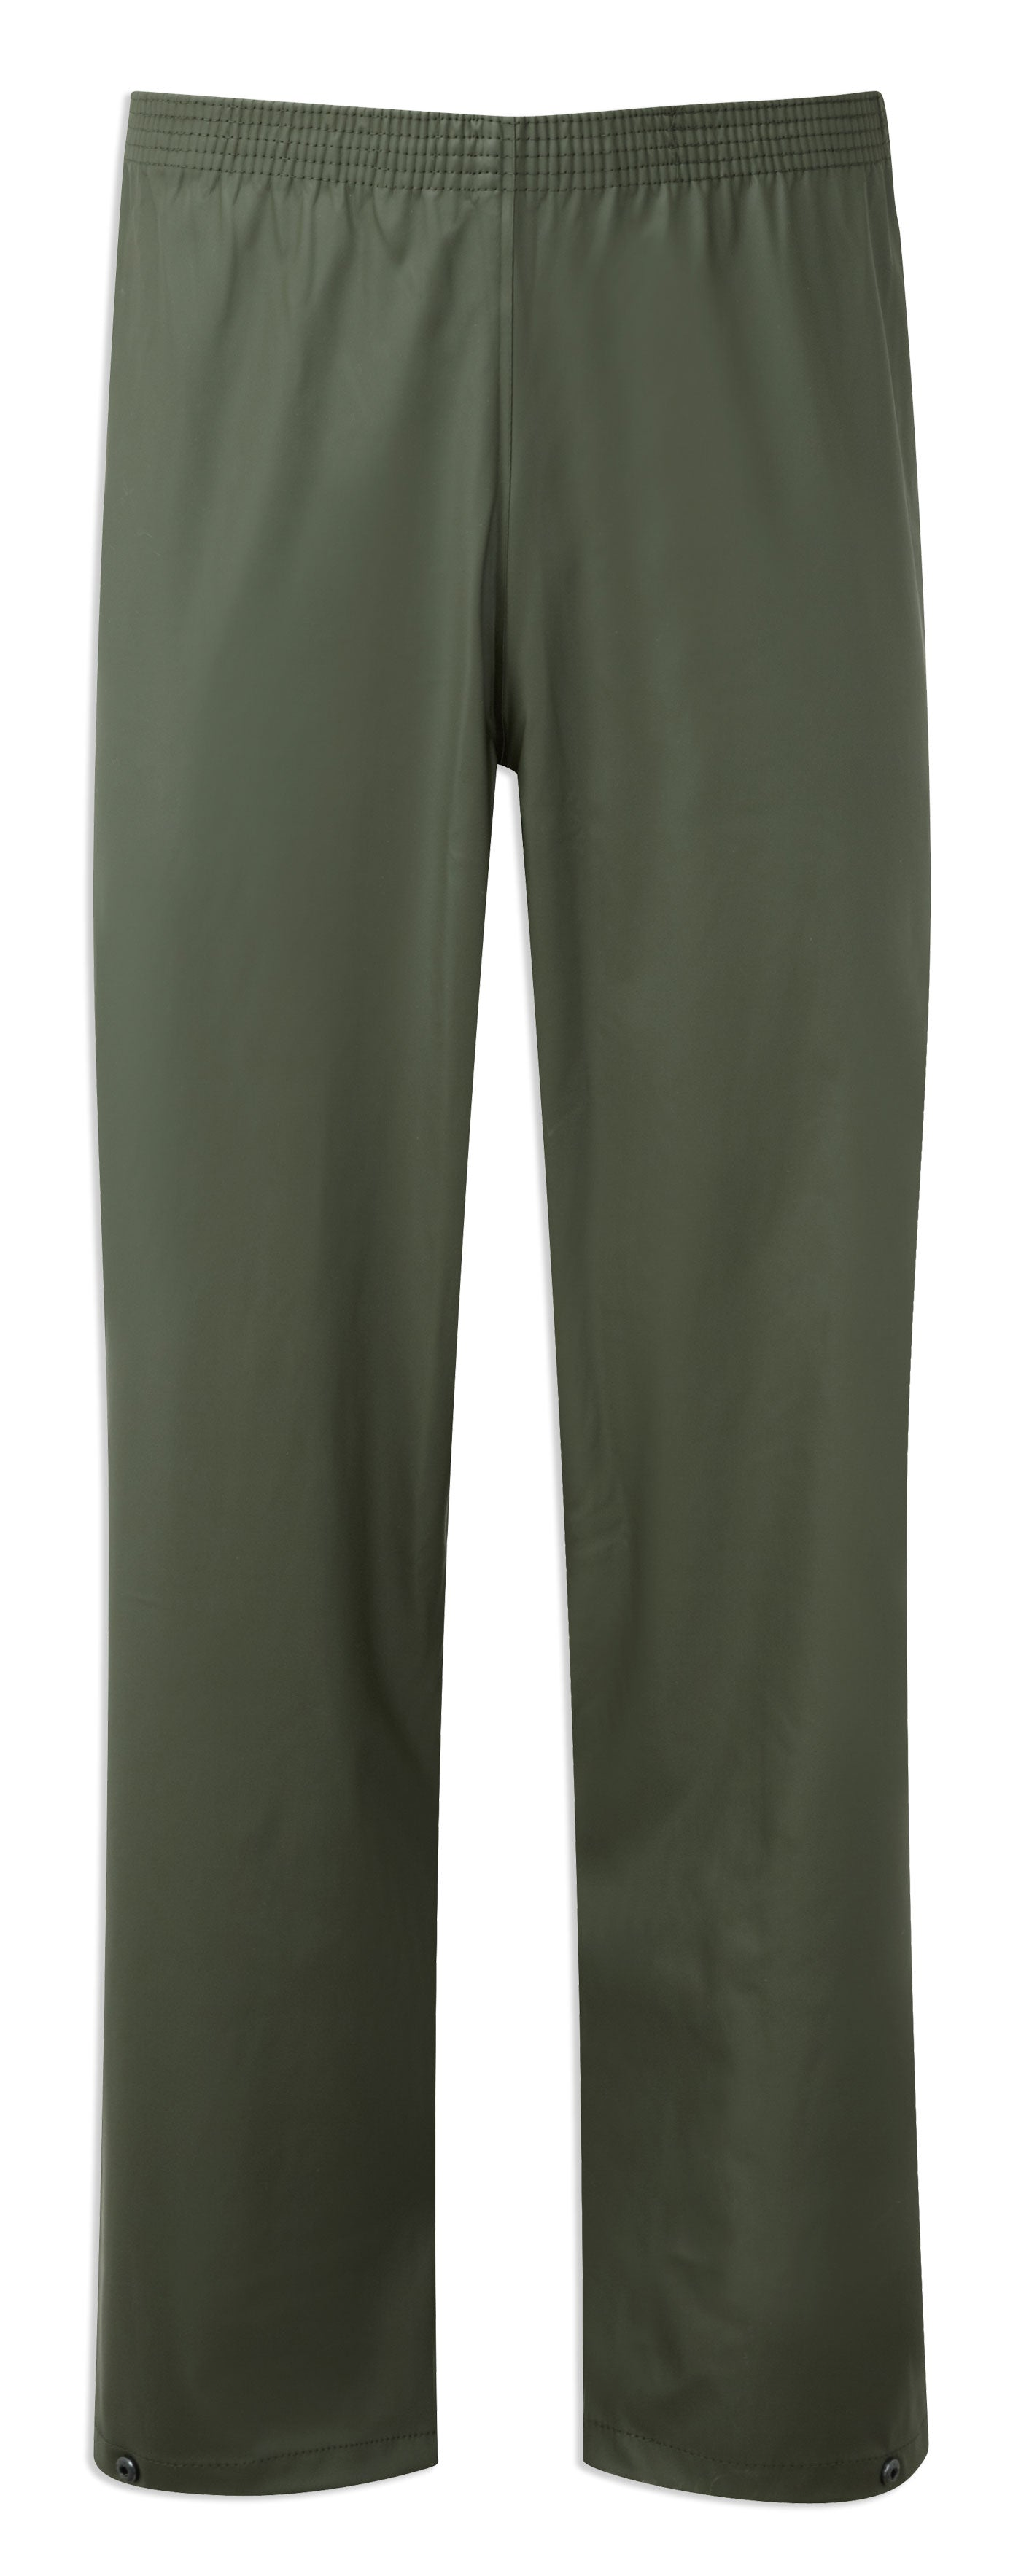 Qlive green waterproof trousers from castle protective clothing